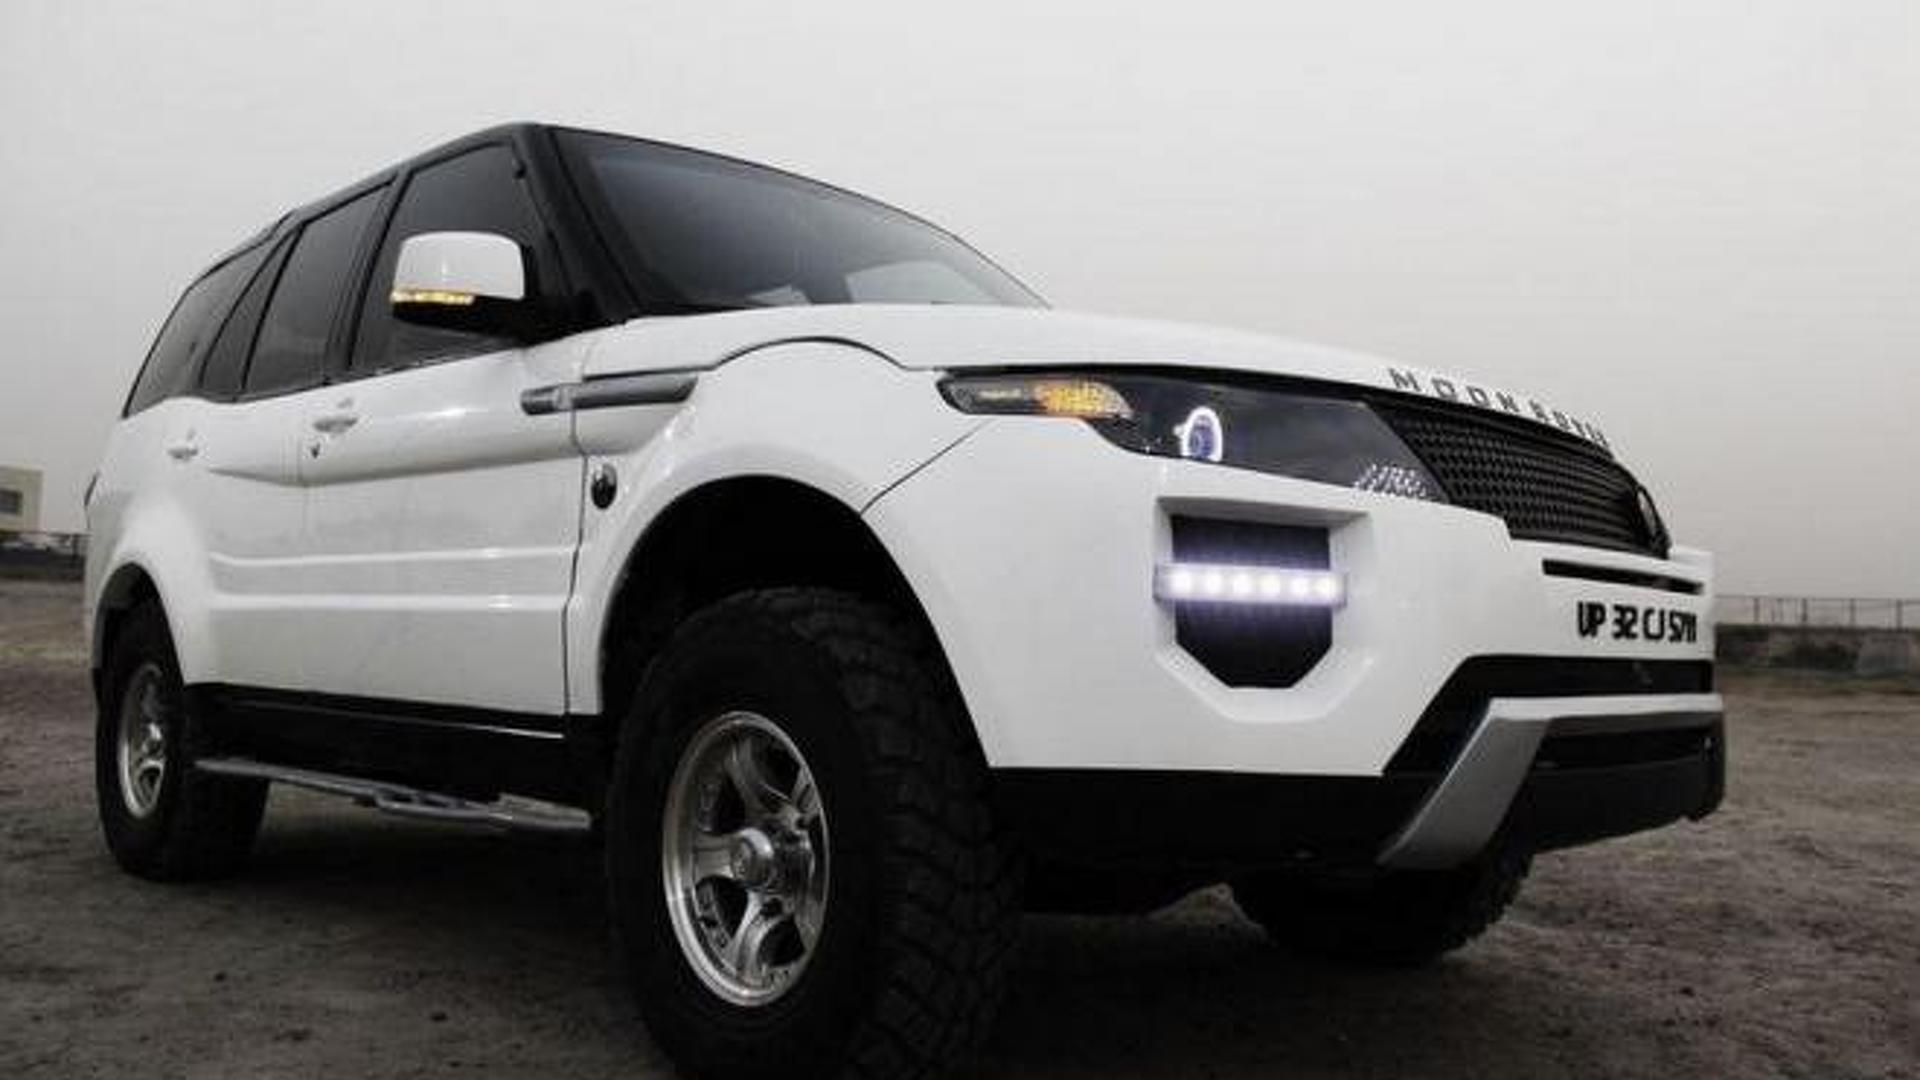 Indian tuner creates the 'Moon Rover' Evoque